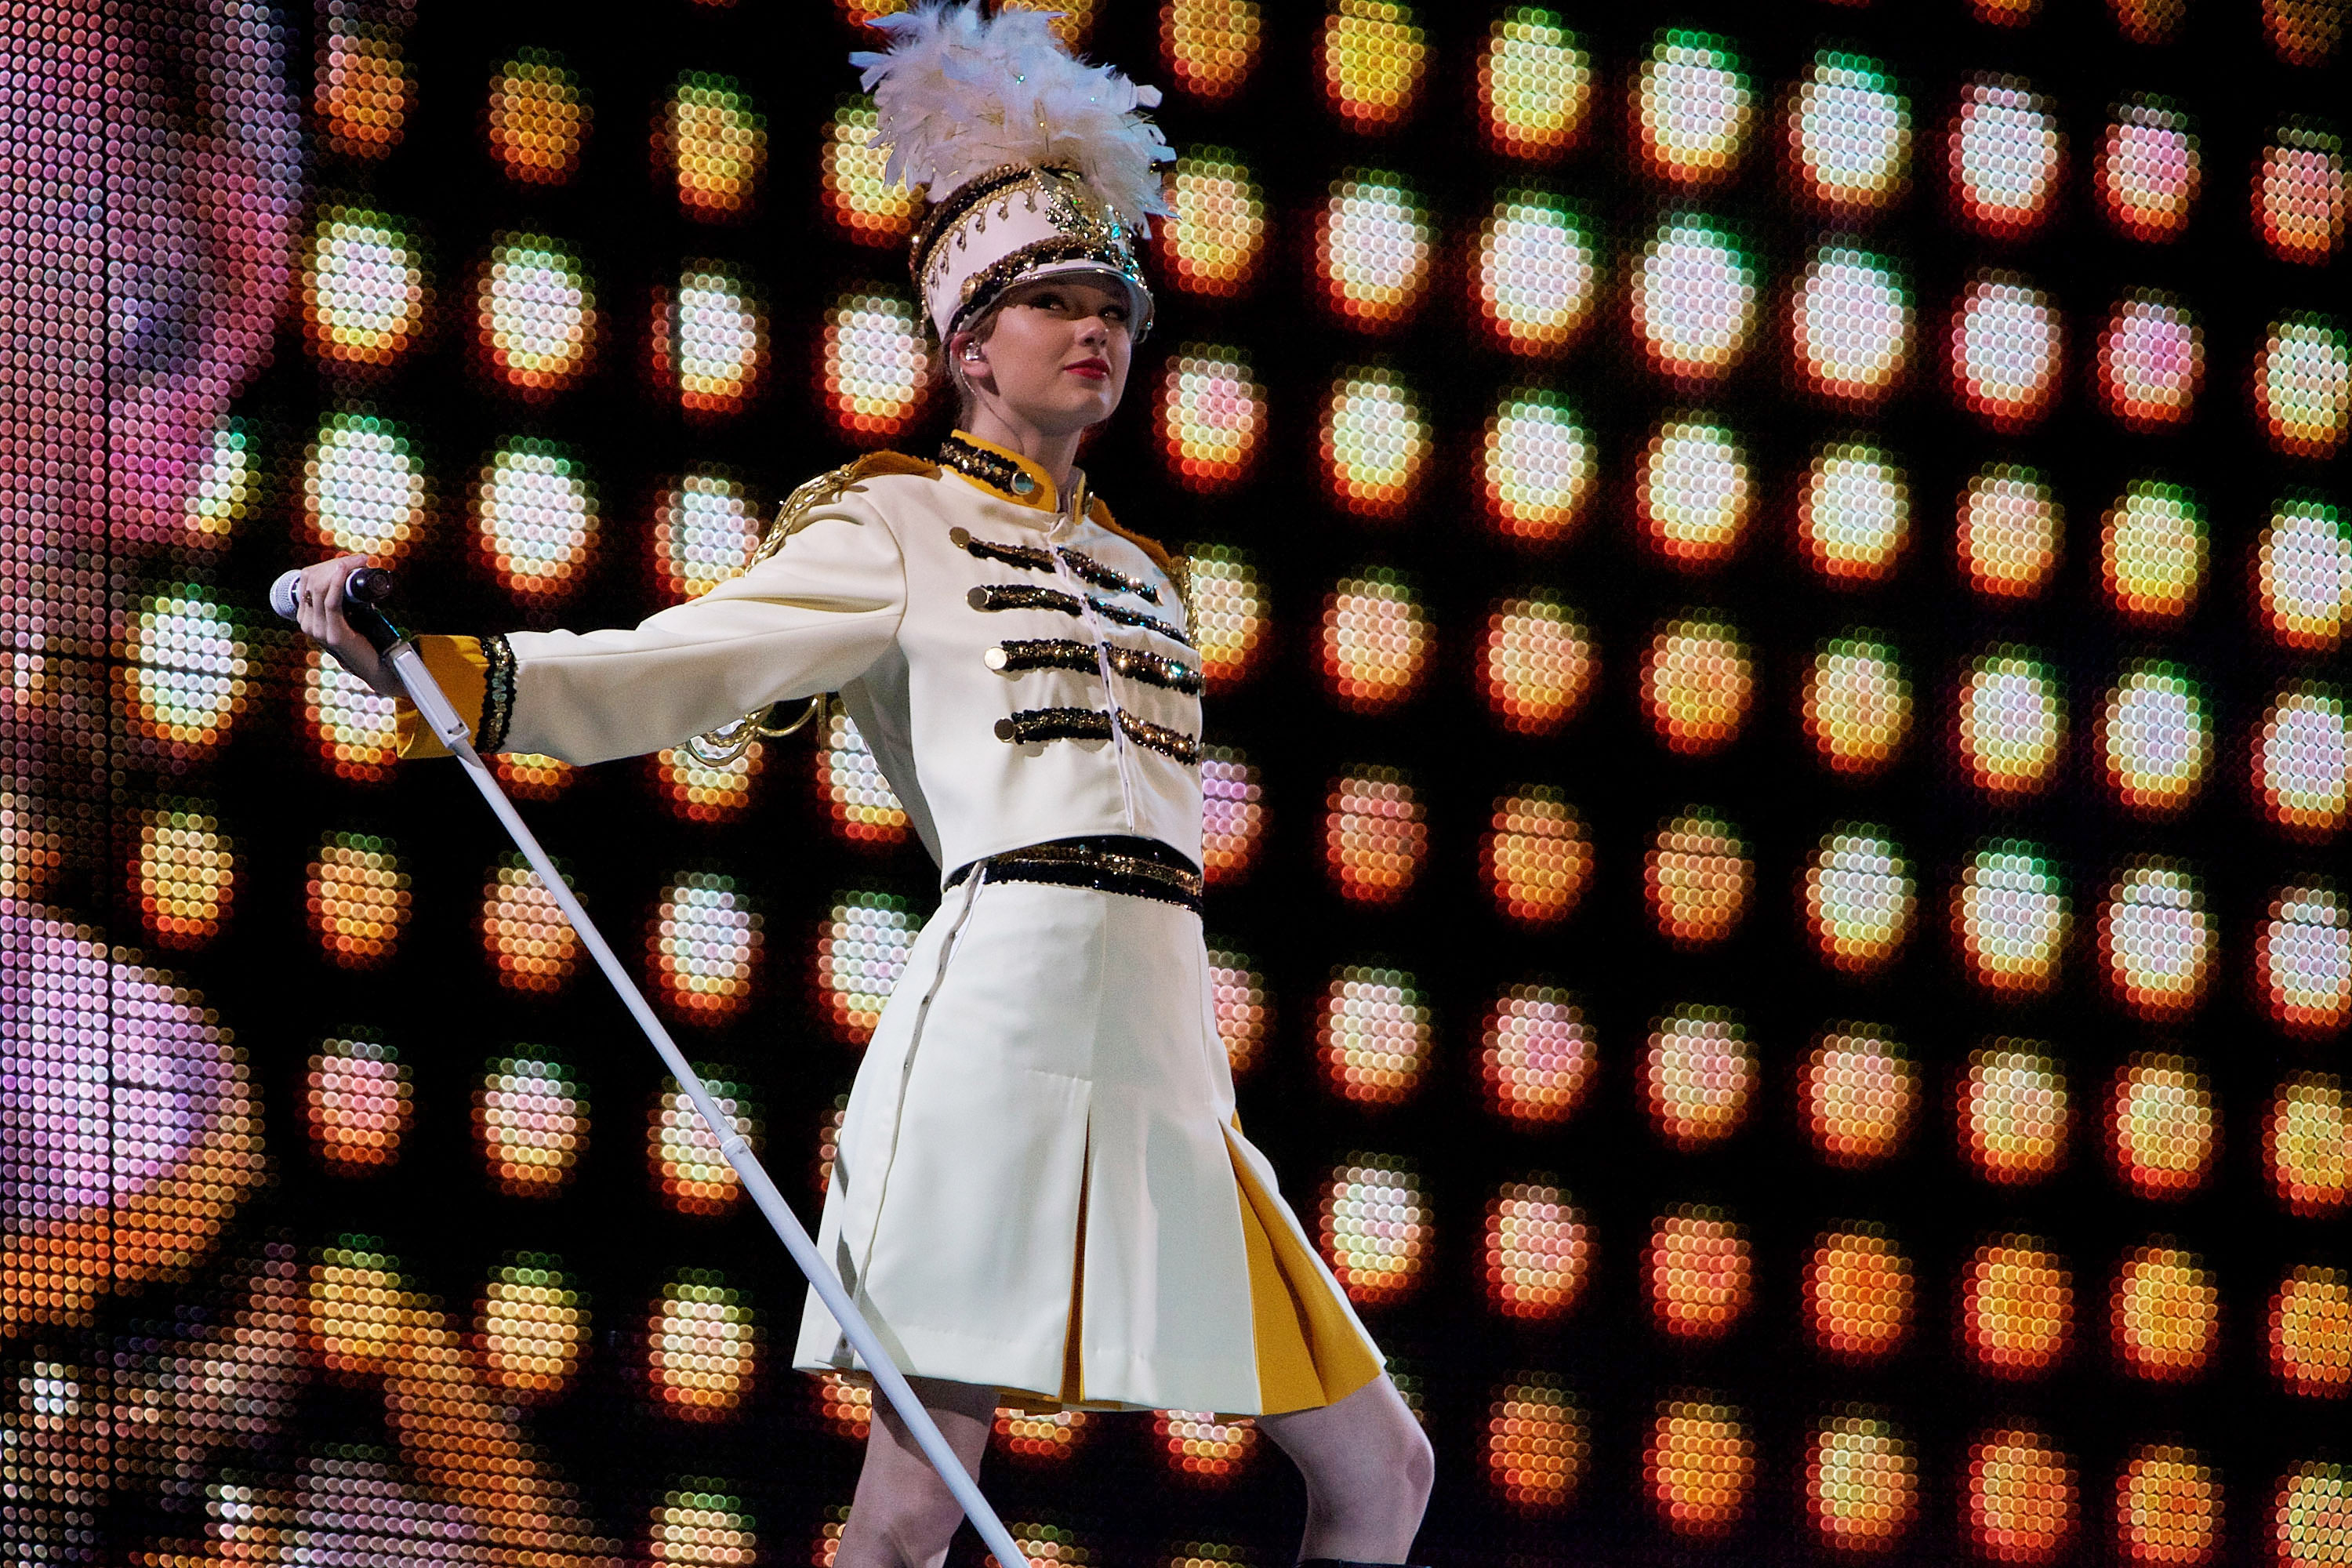 32833_Taylor_swift_performs_her_Fearless_Tour_at_Tiger_Stadium_043_122_101lo.jpg